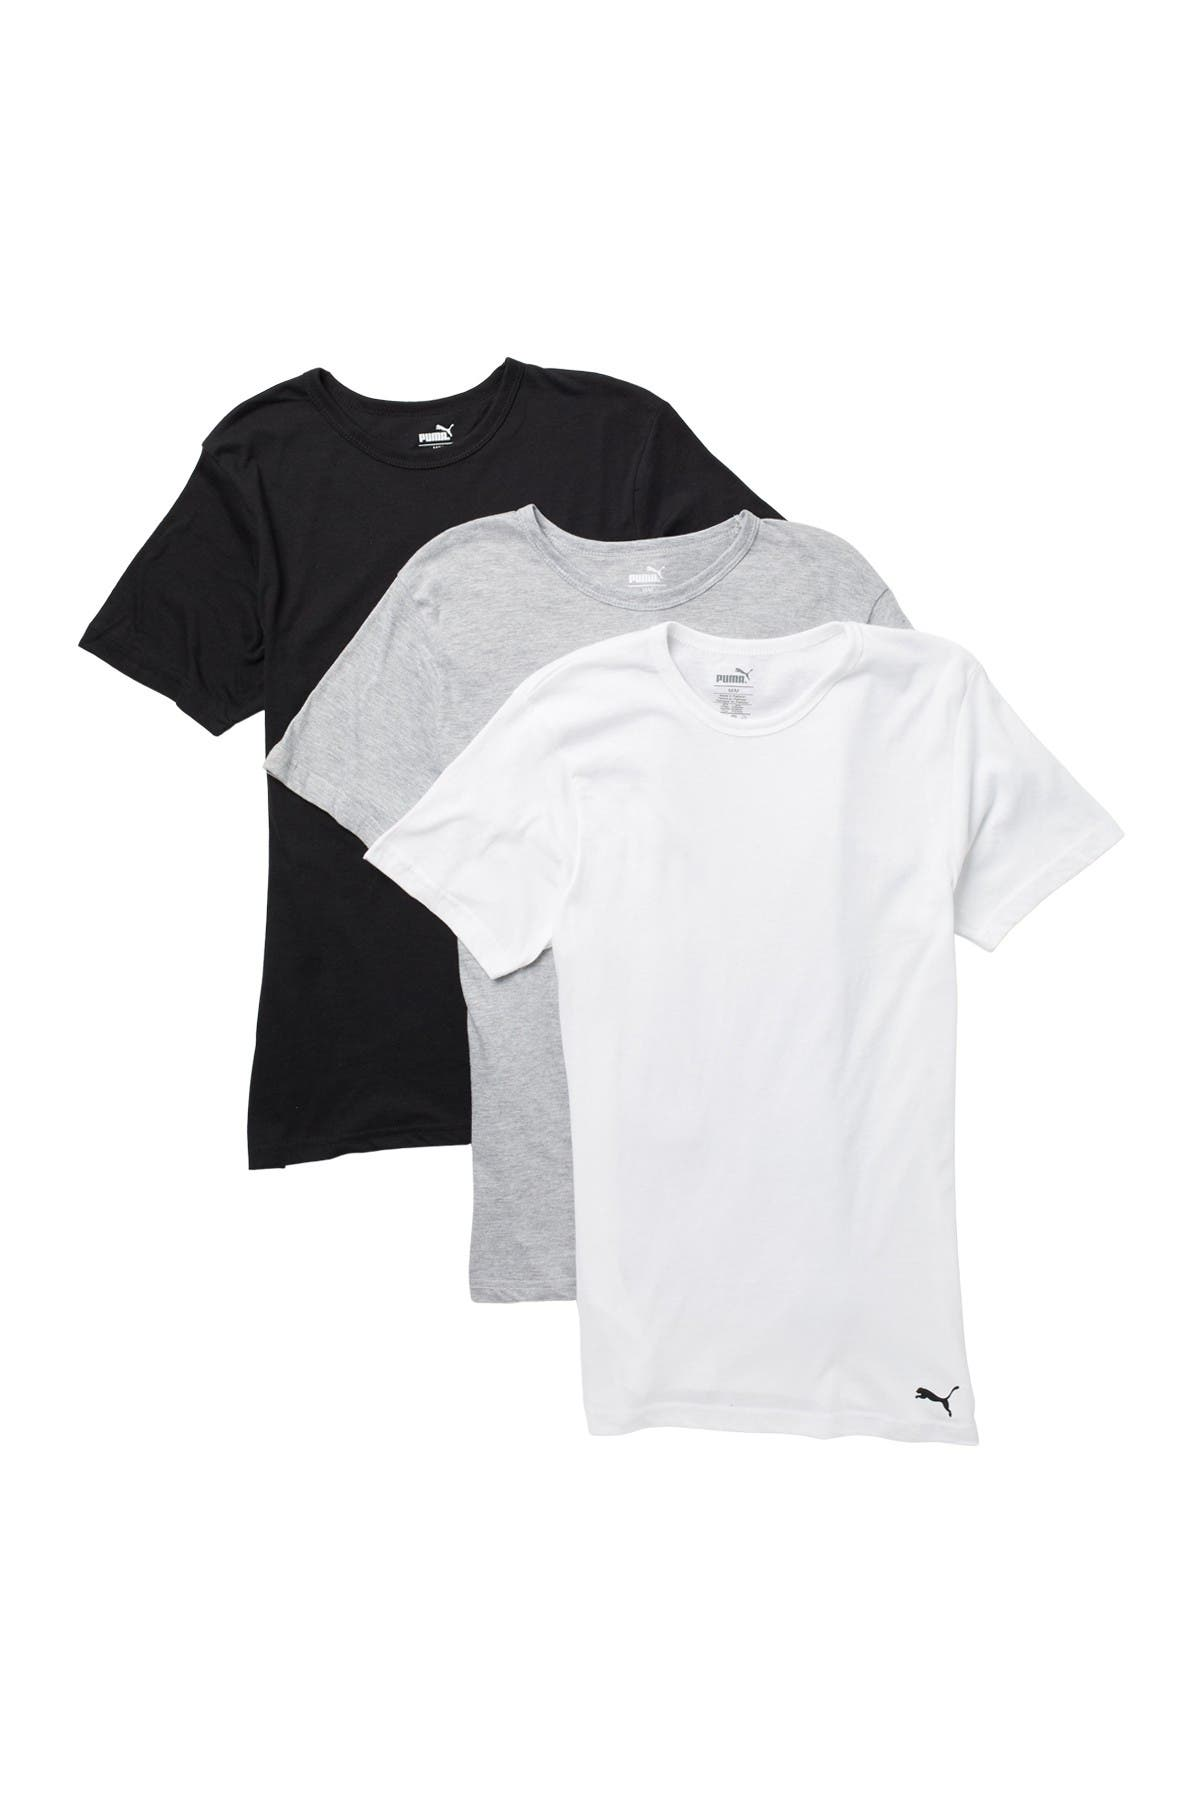 Image of PUMA Crew Neck T-Shirts - Pack of 3